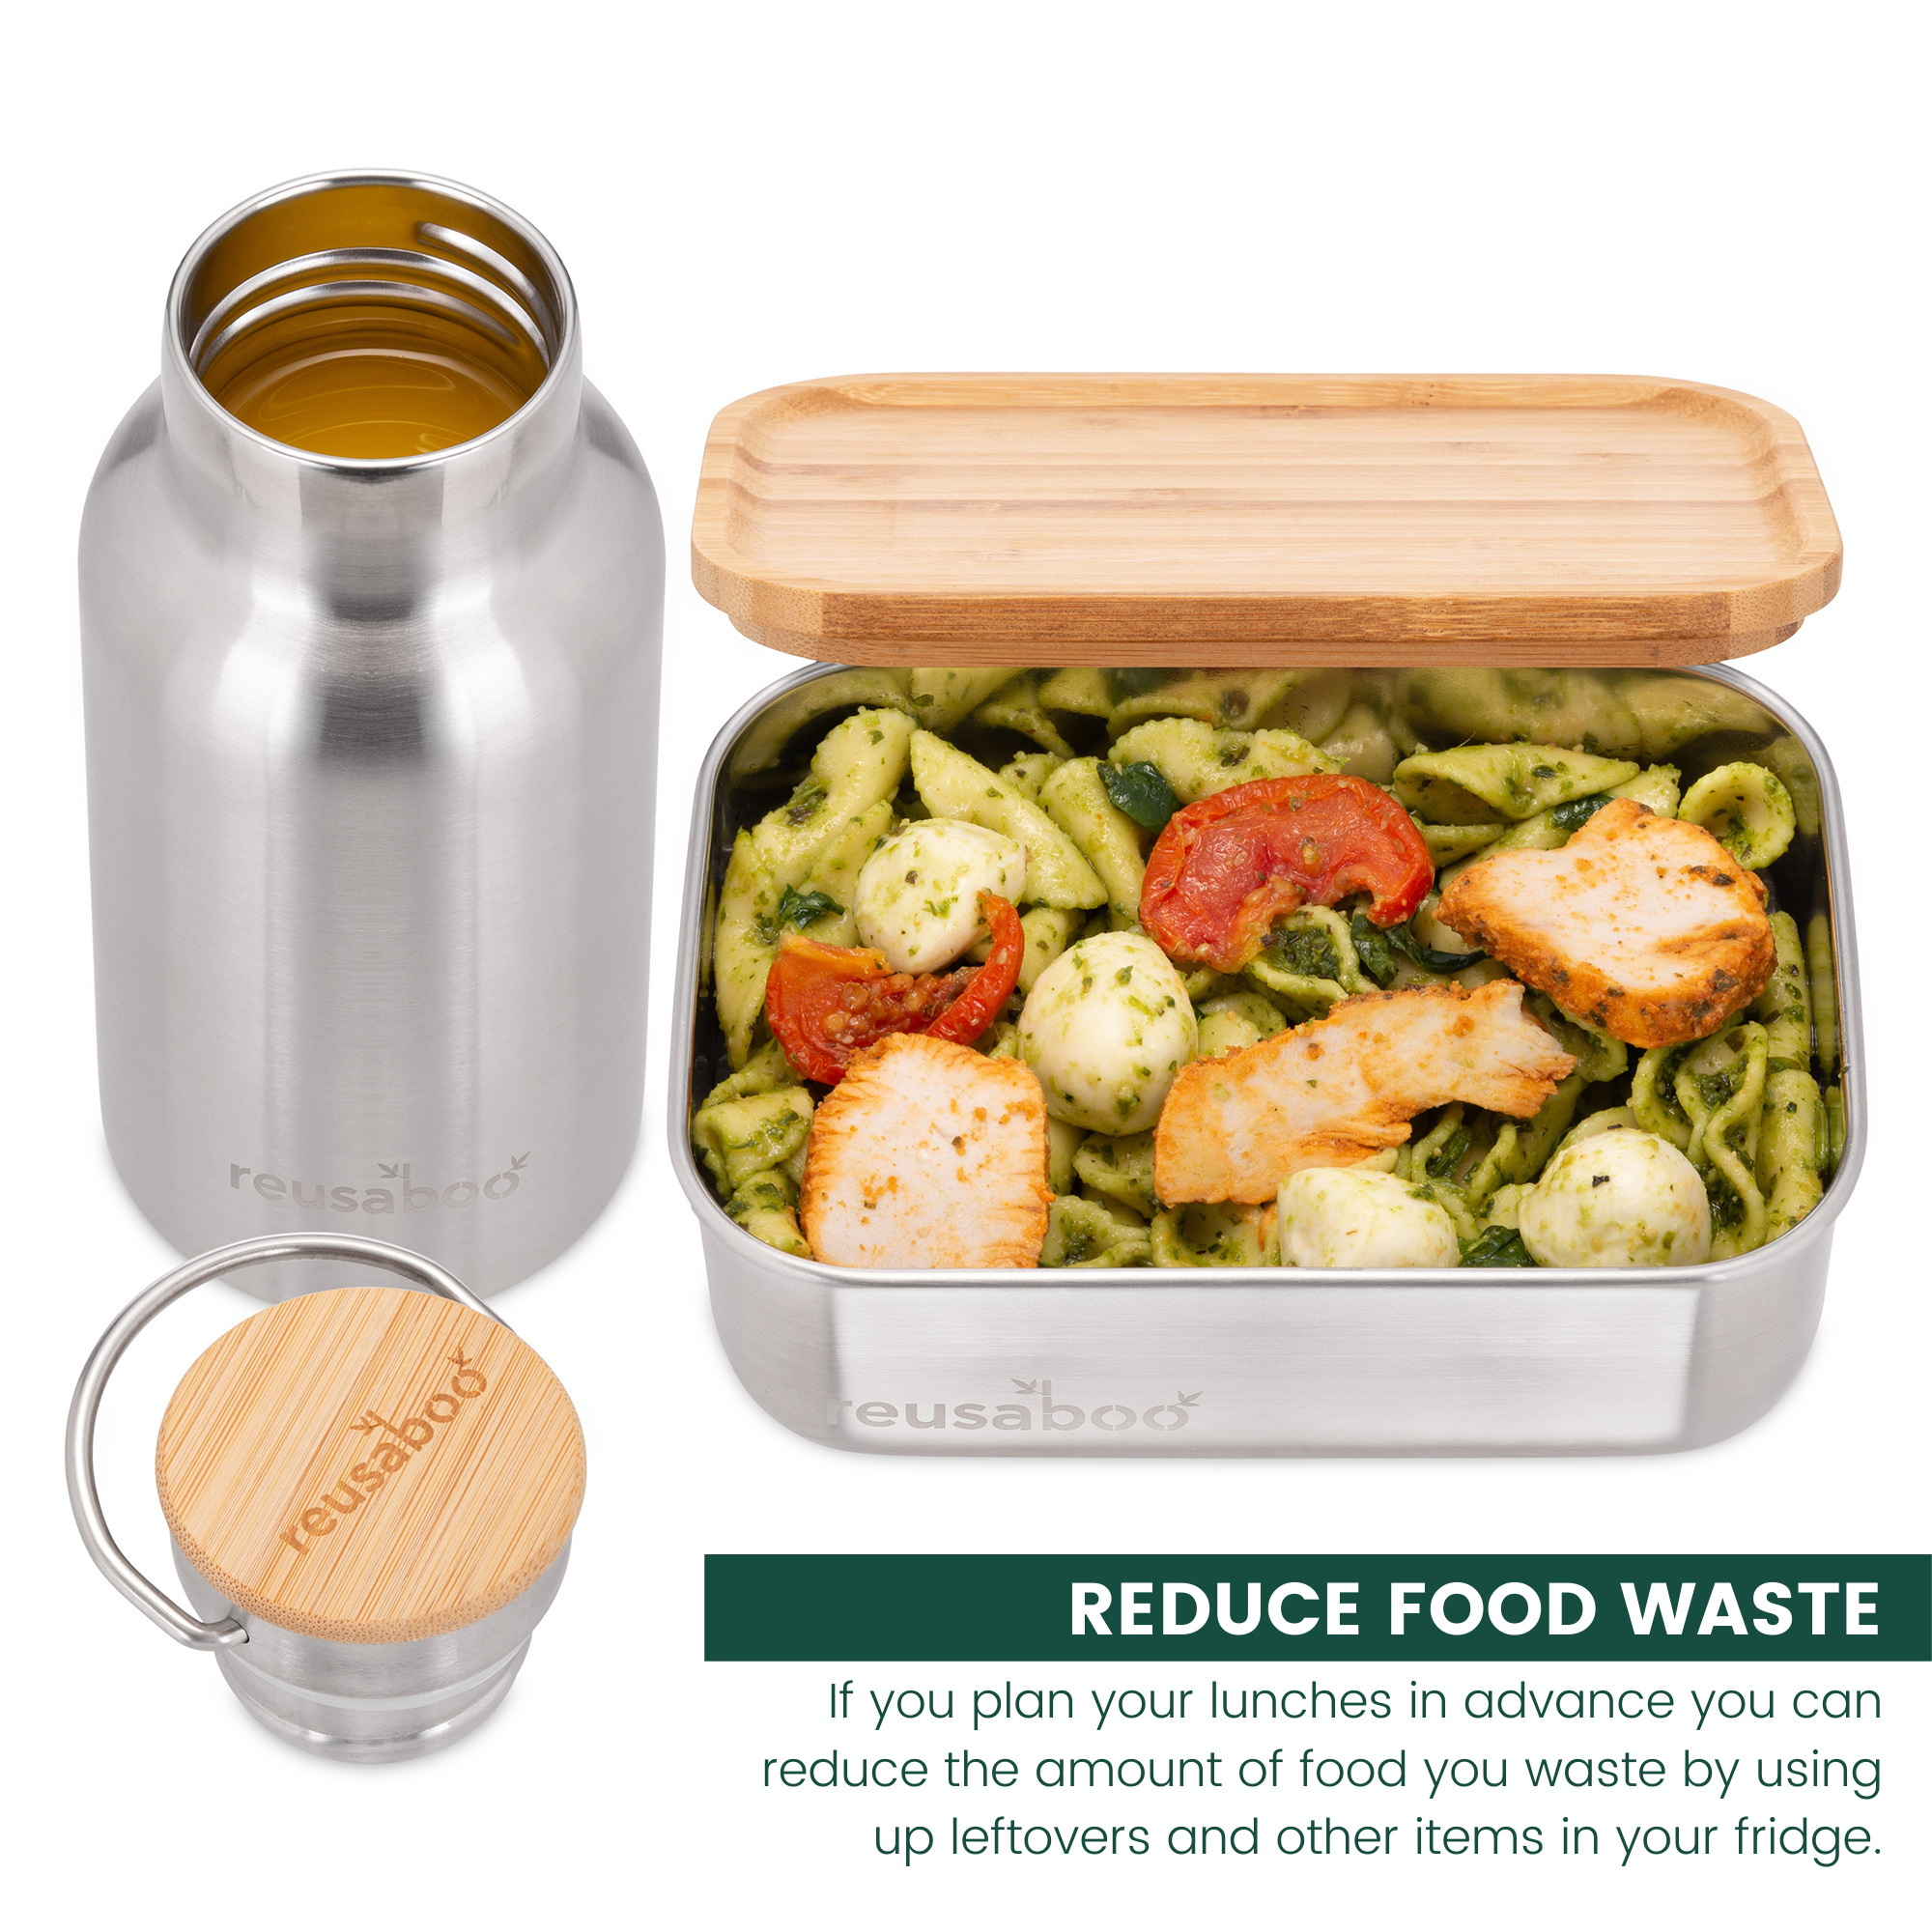 Reusaboo Stainless Steel Lunch Box and Bottle with Food and Juice